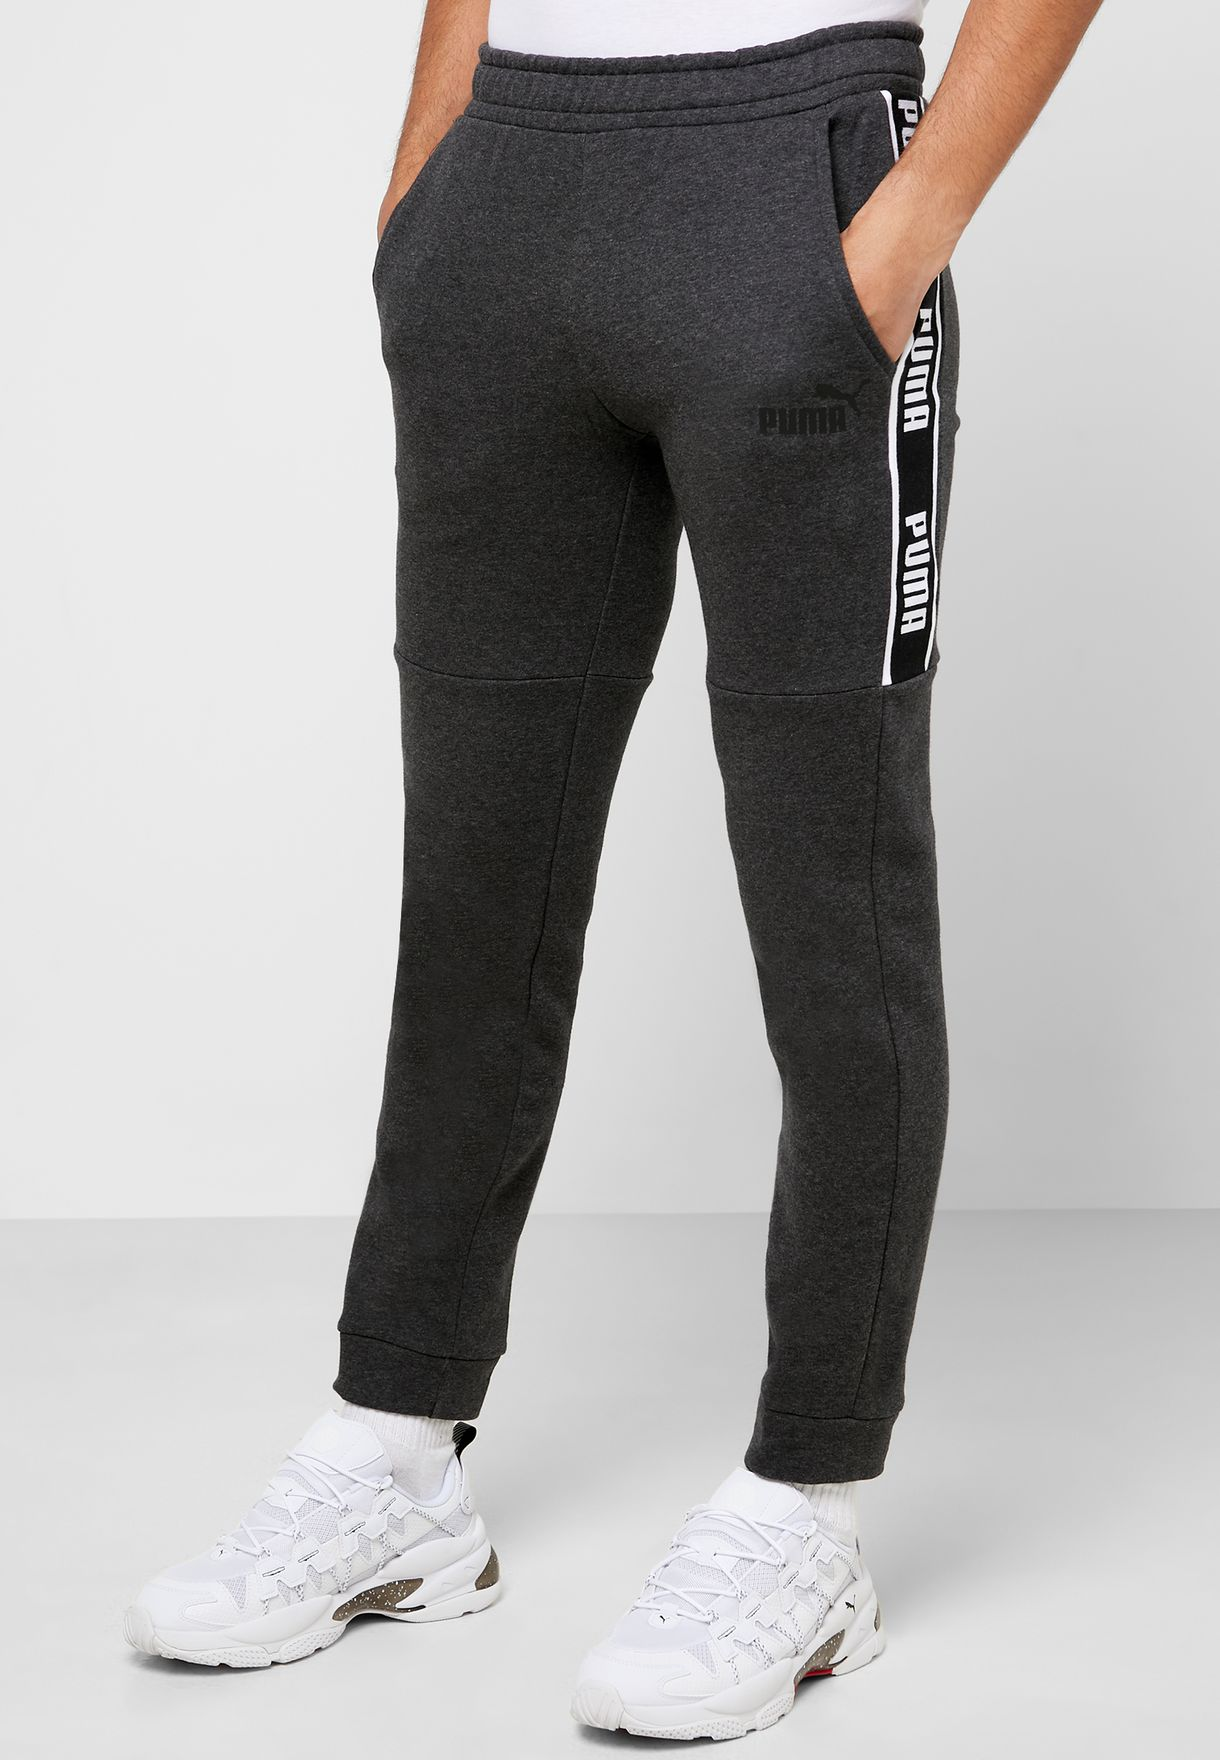 Amplified Sweatpants